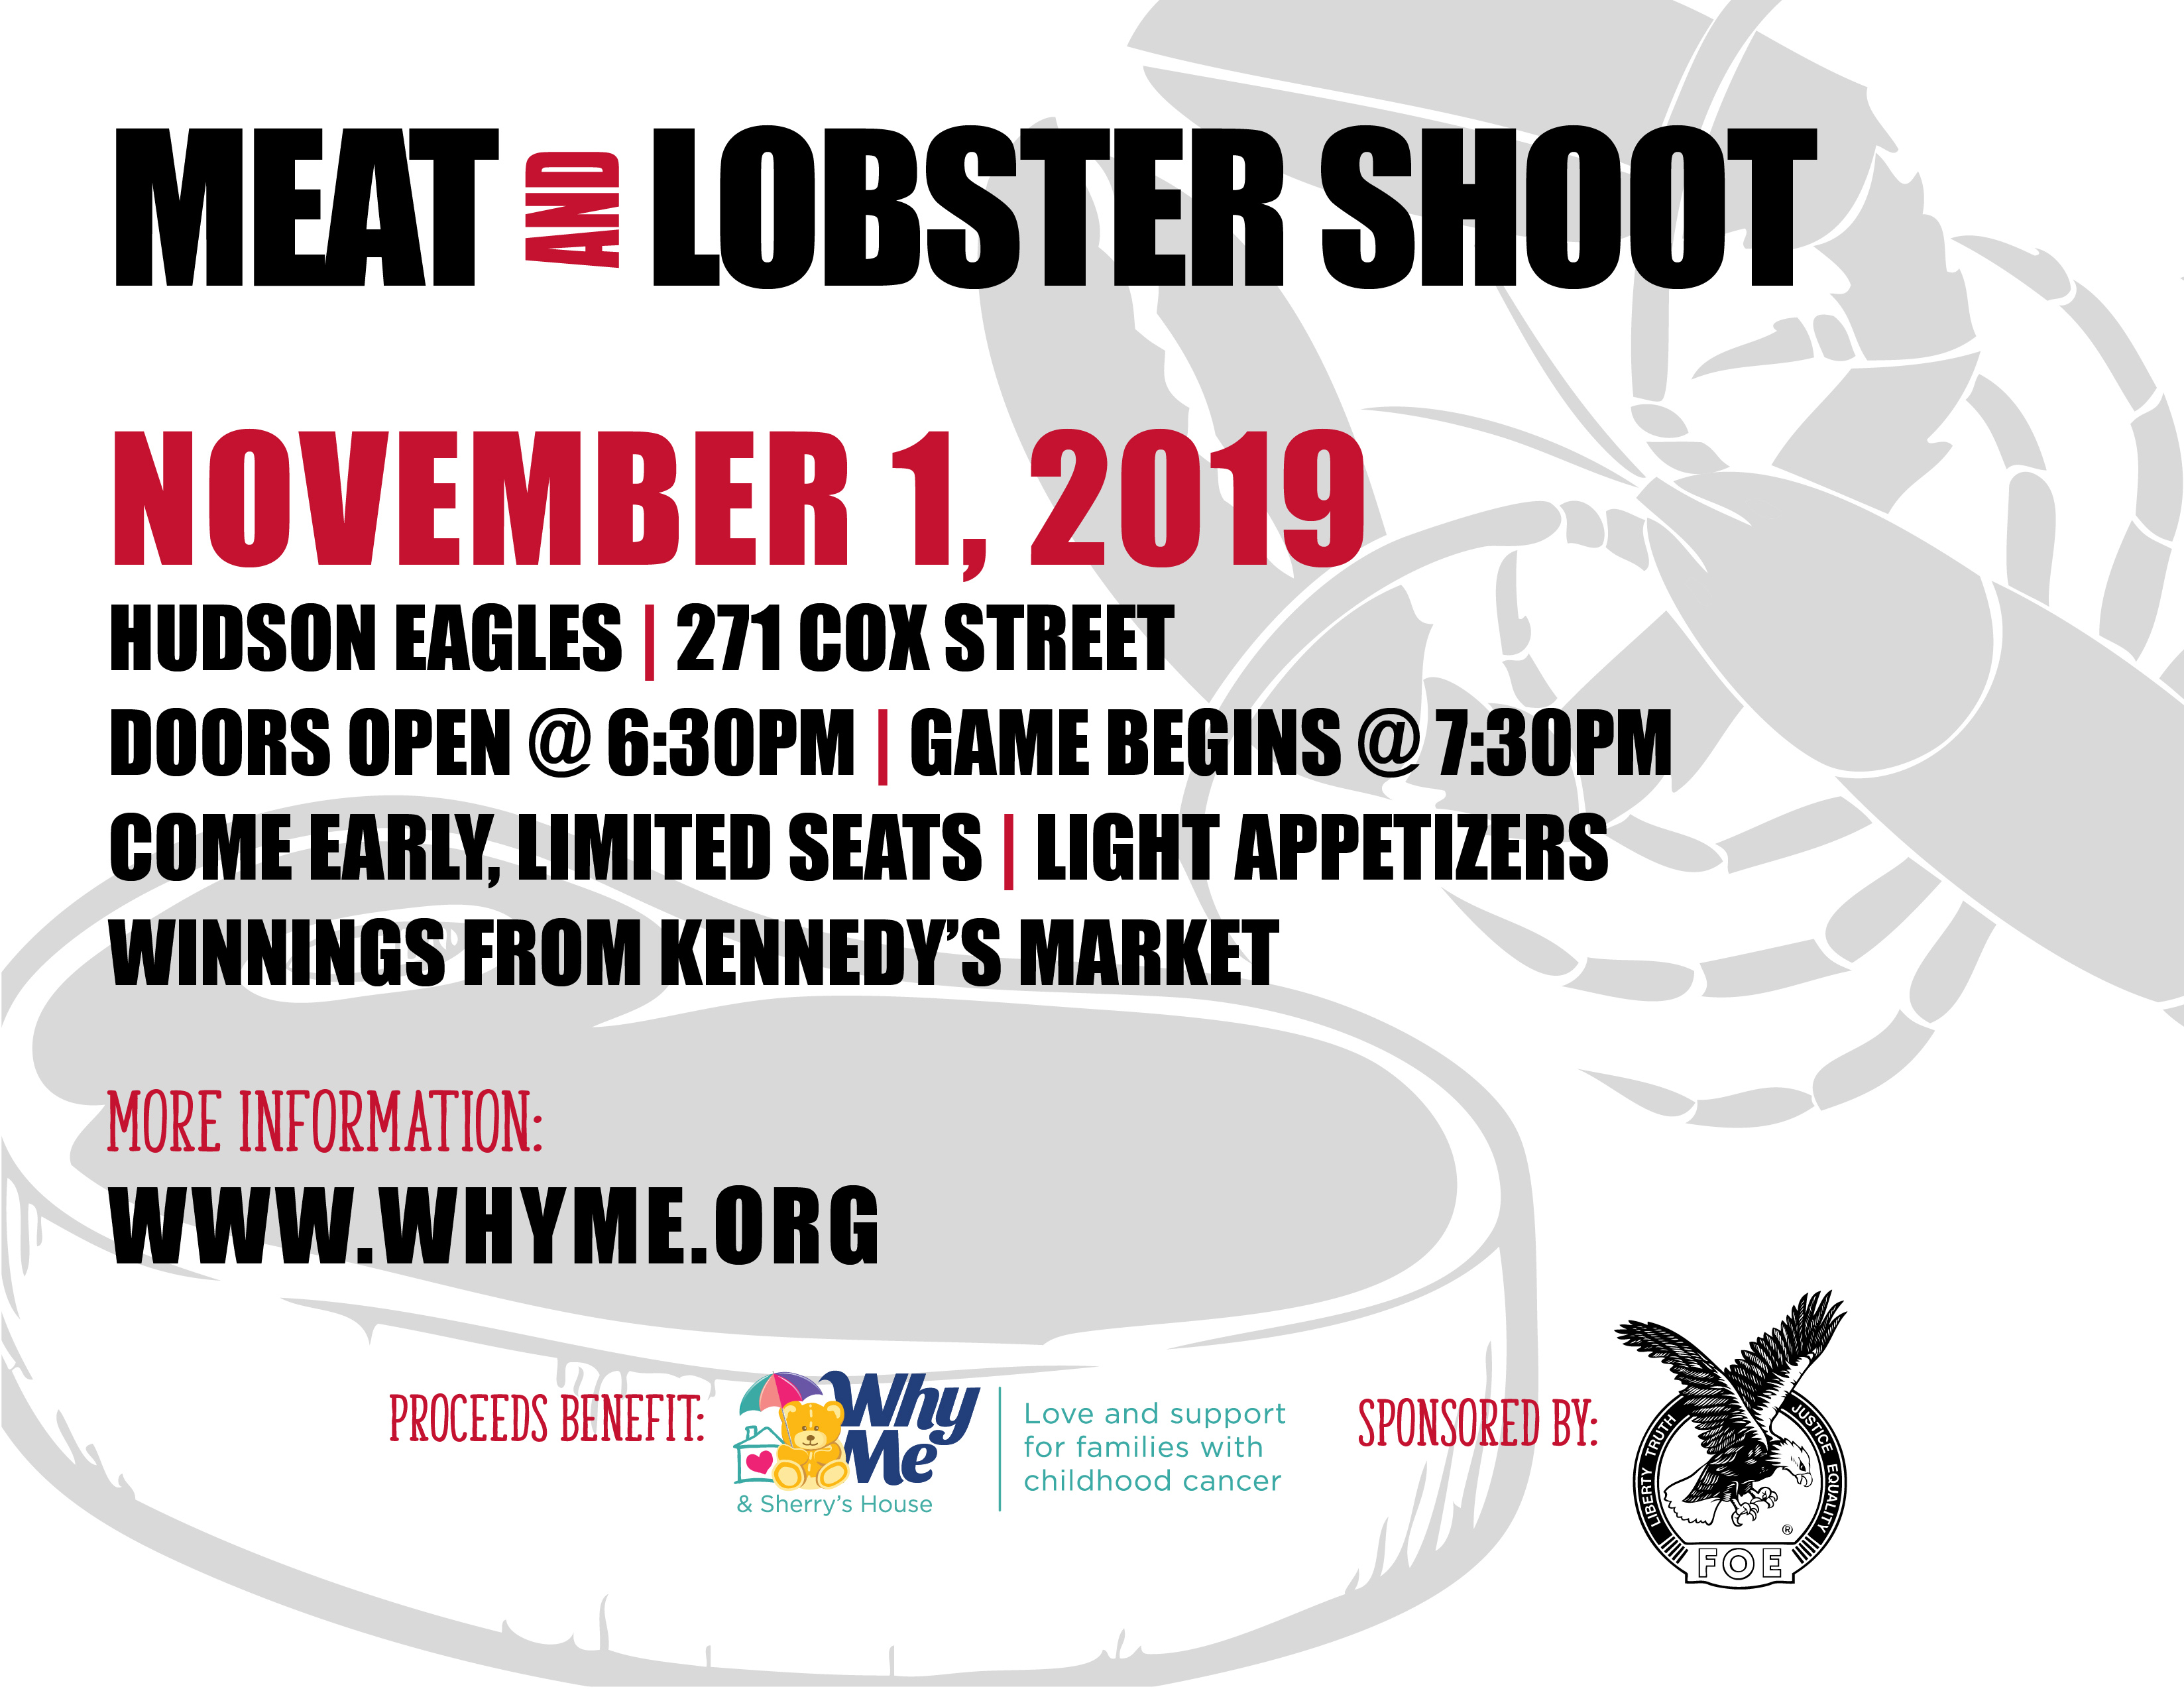 Meat and Lobster Shoot - Why Me